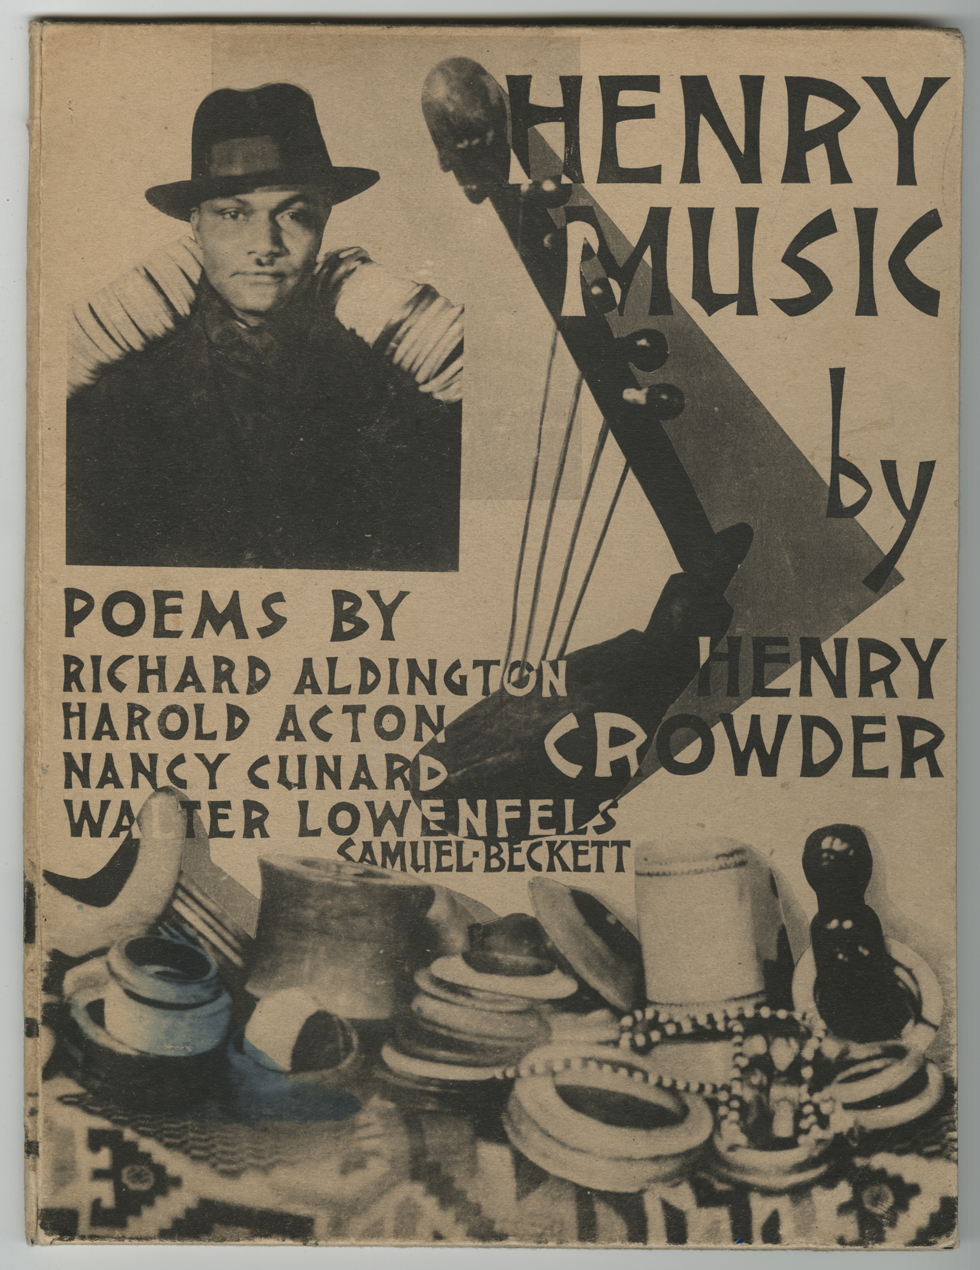 Henry Music. Published by Nancy Cunard's publishing house, Hours Press, 1930 with a cover by Man Ray © Courtesy Harry Ransom Center The University of Texas at Austin © Man Ray Trust - Adagp, Paris 2013